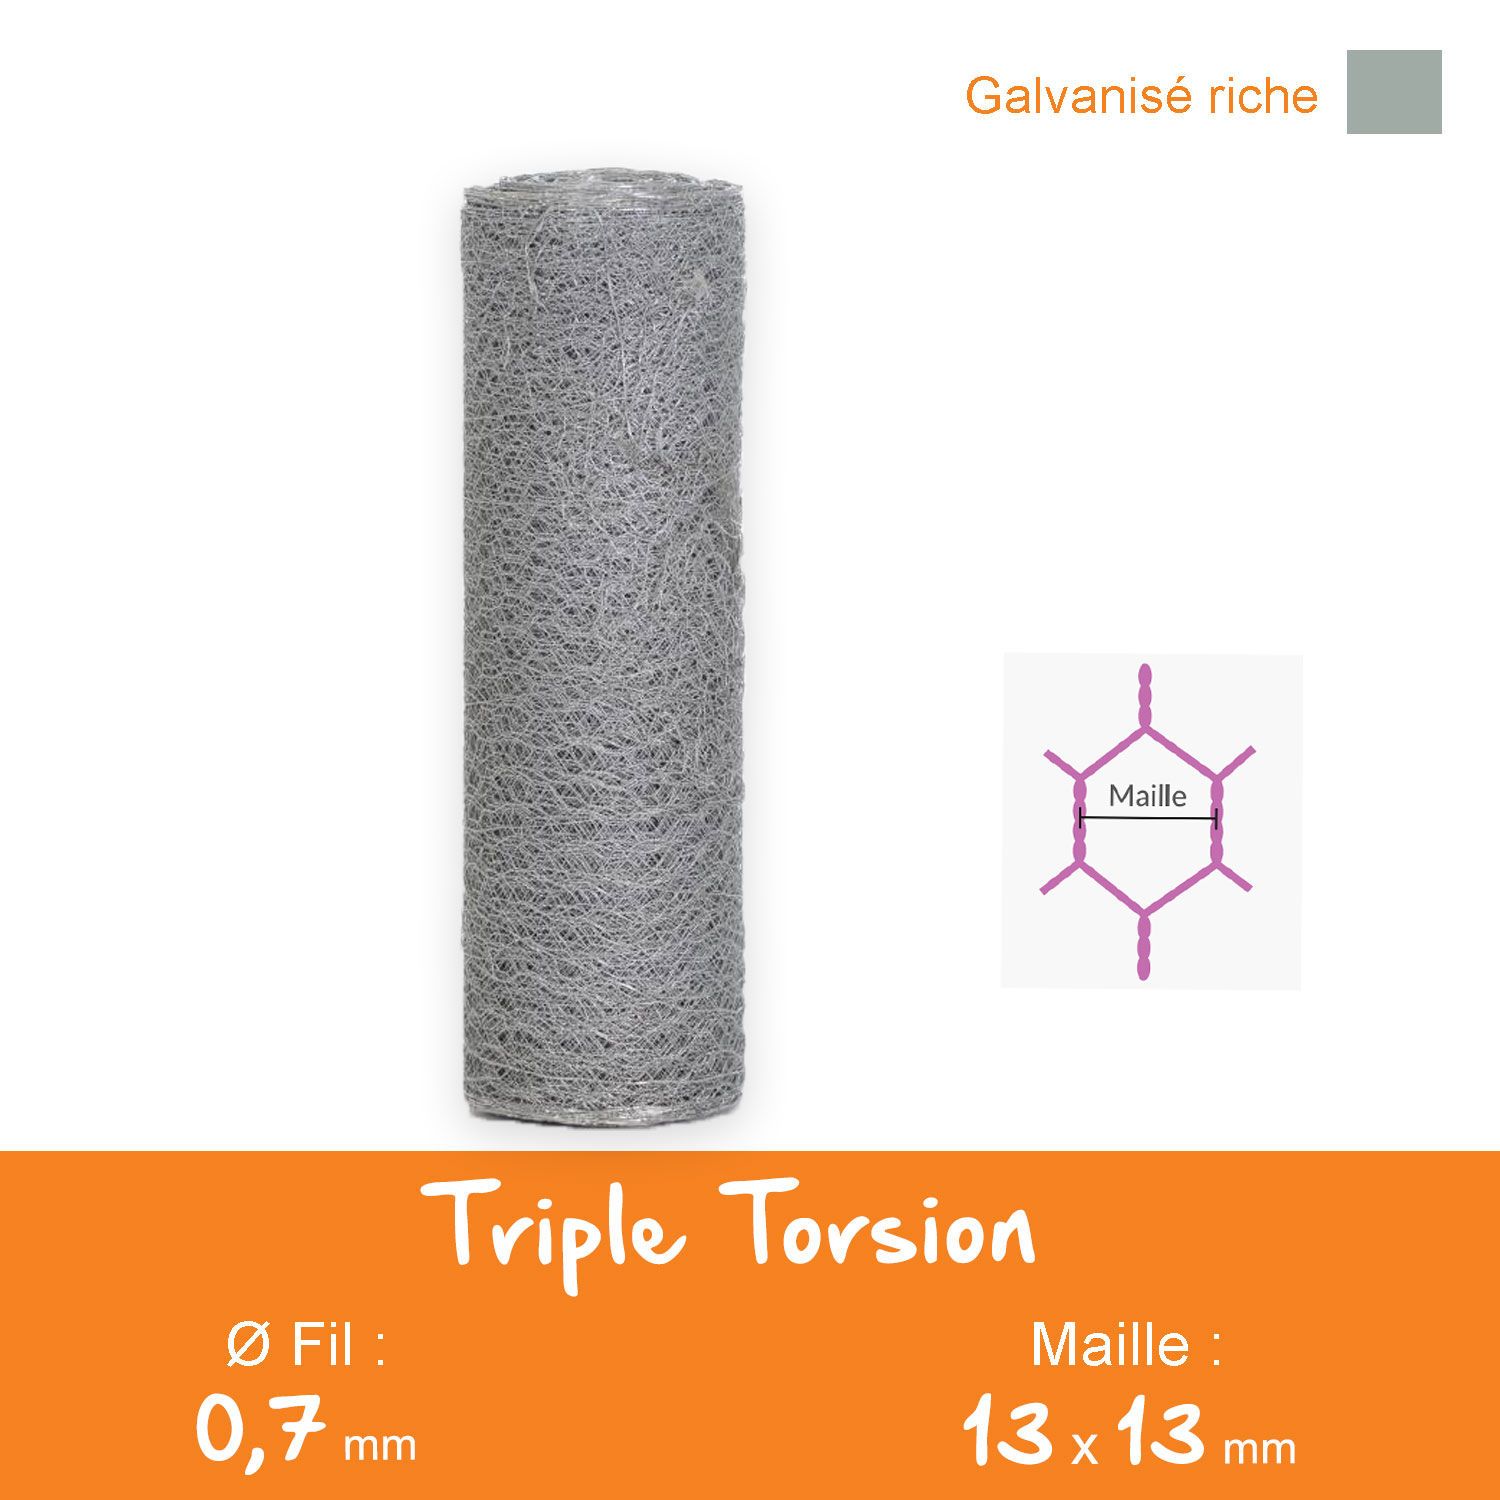 Grillage Triple Torsion Galvanisé - Maille 13 mm - Ø 0,7 mm